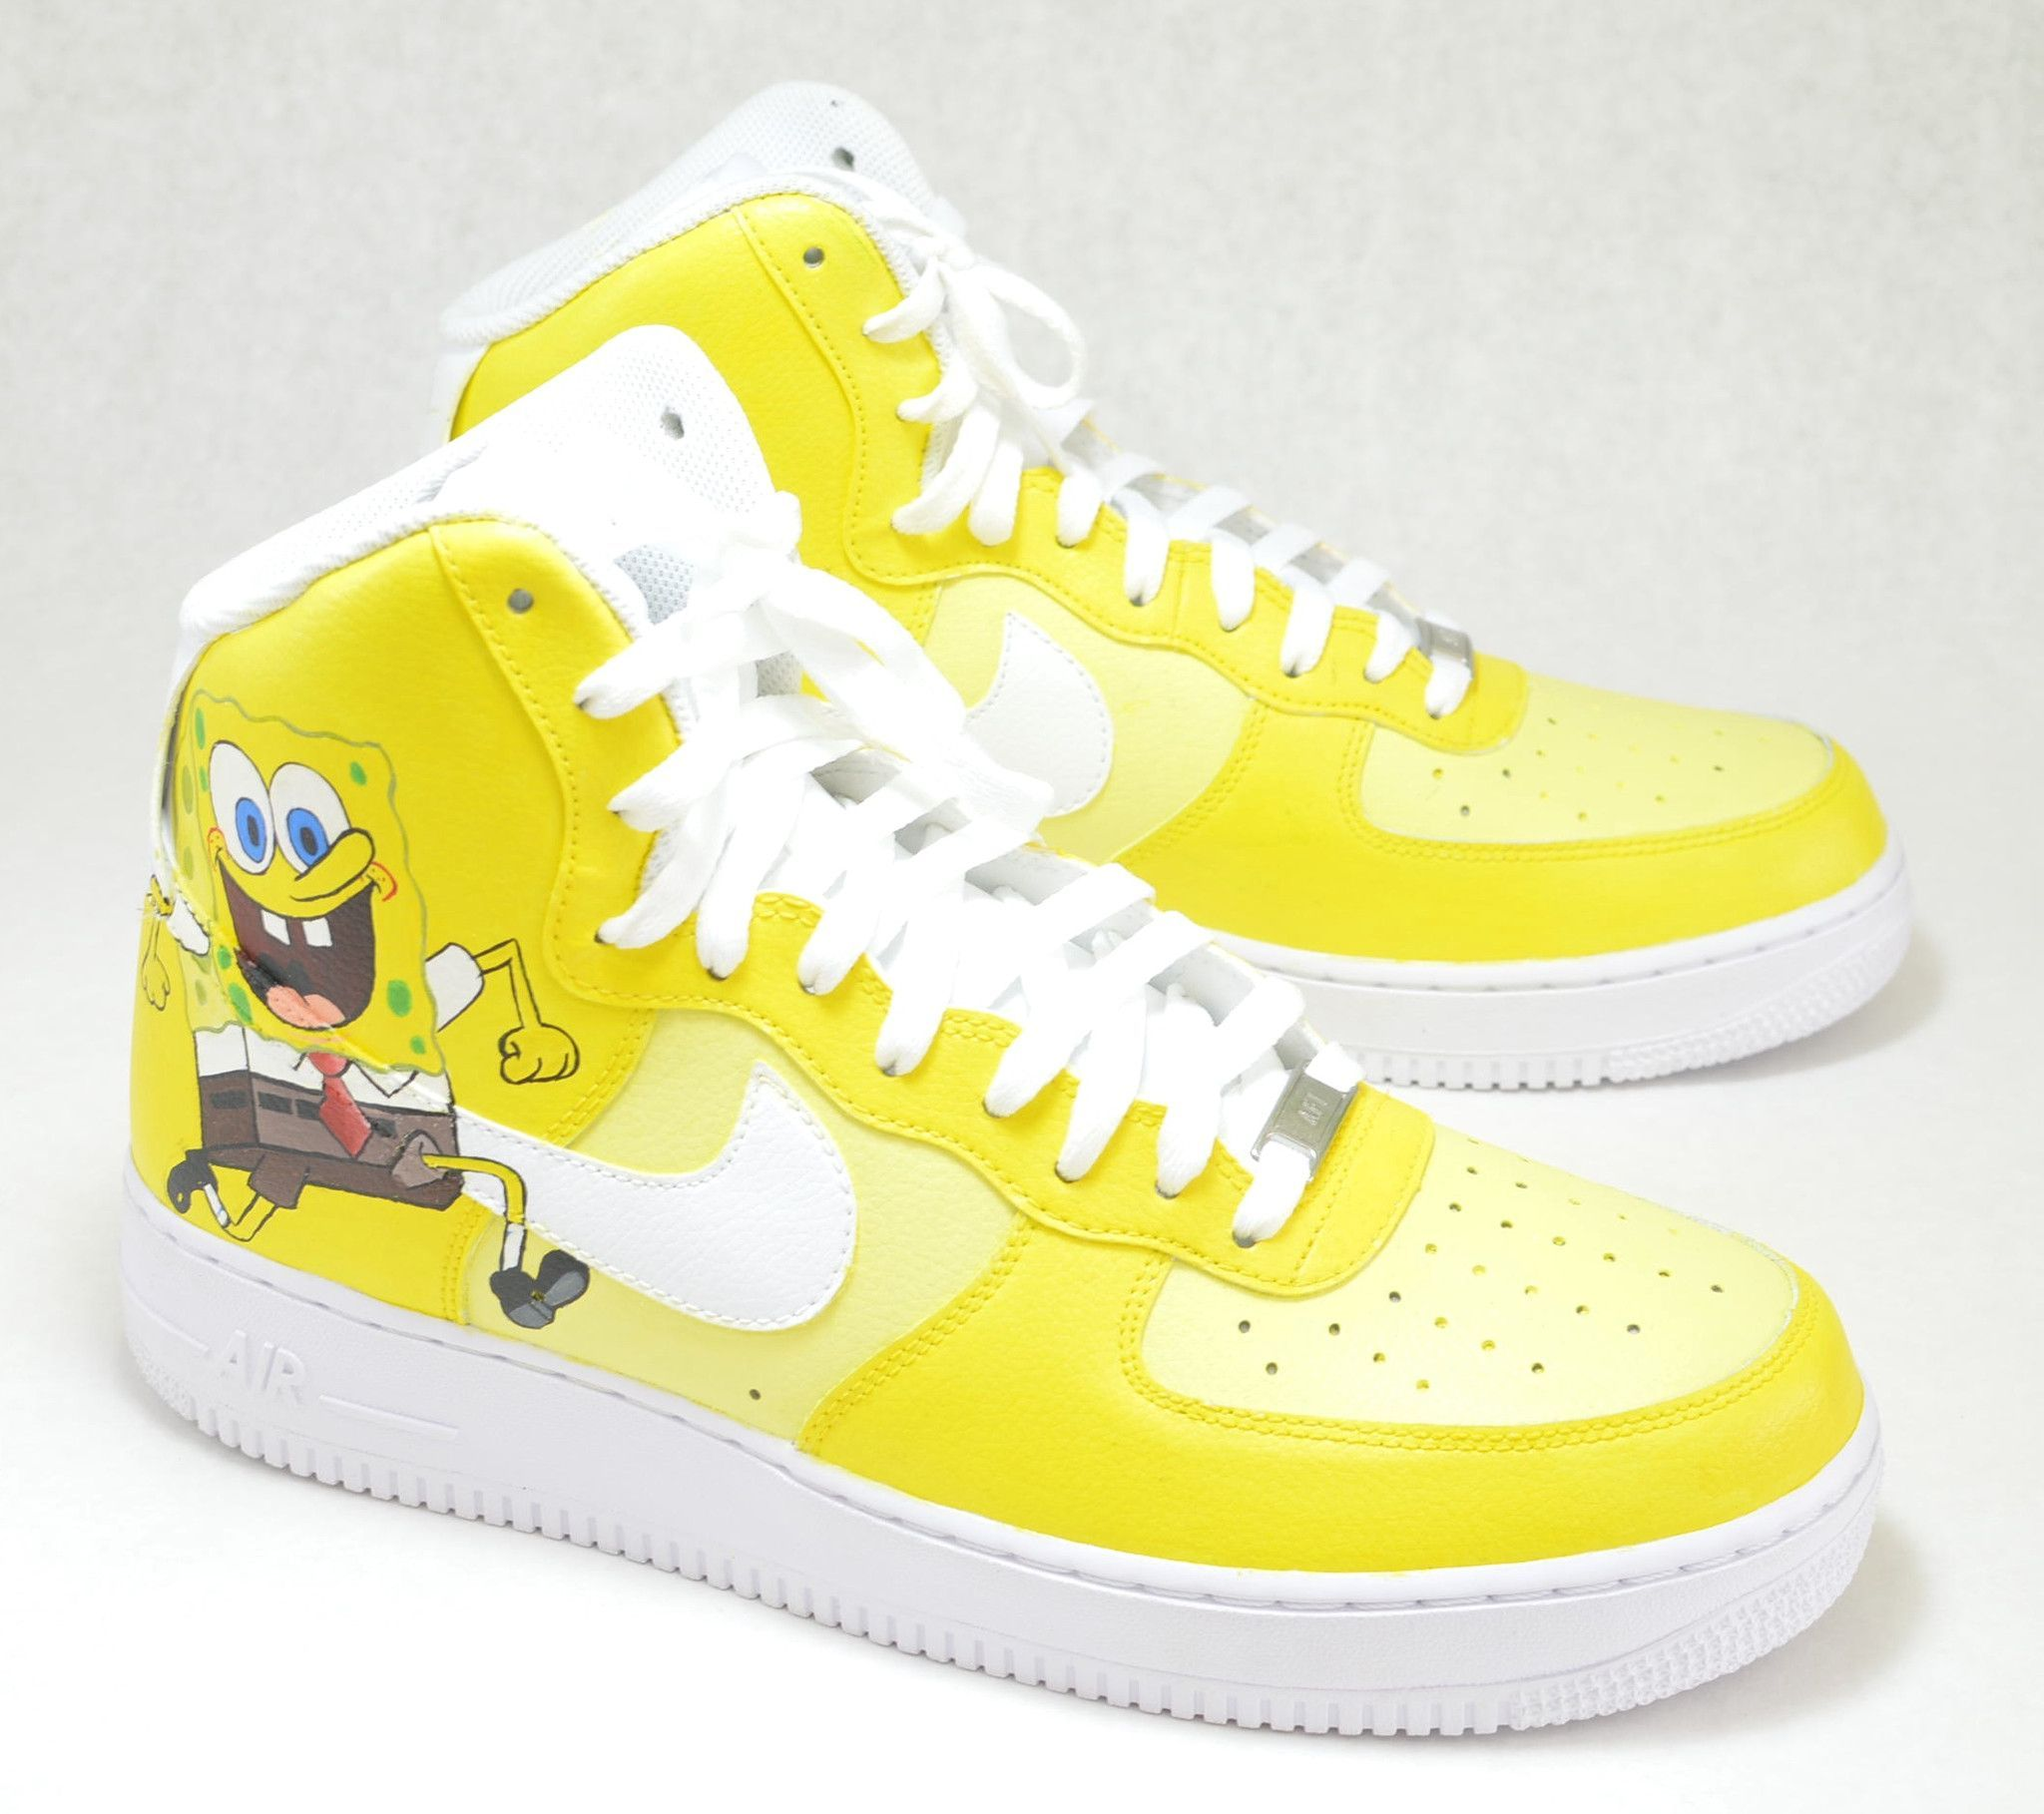 sale retailer 89c8e e7fd4 ... Spongebob SquarePants Nike AF1 High - Custom Painted Sneakers ...